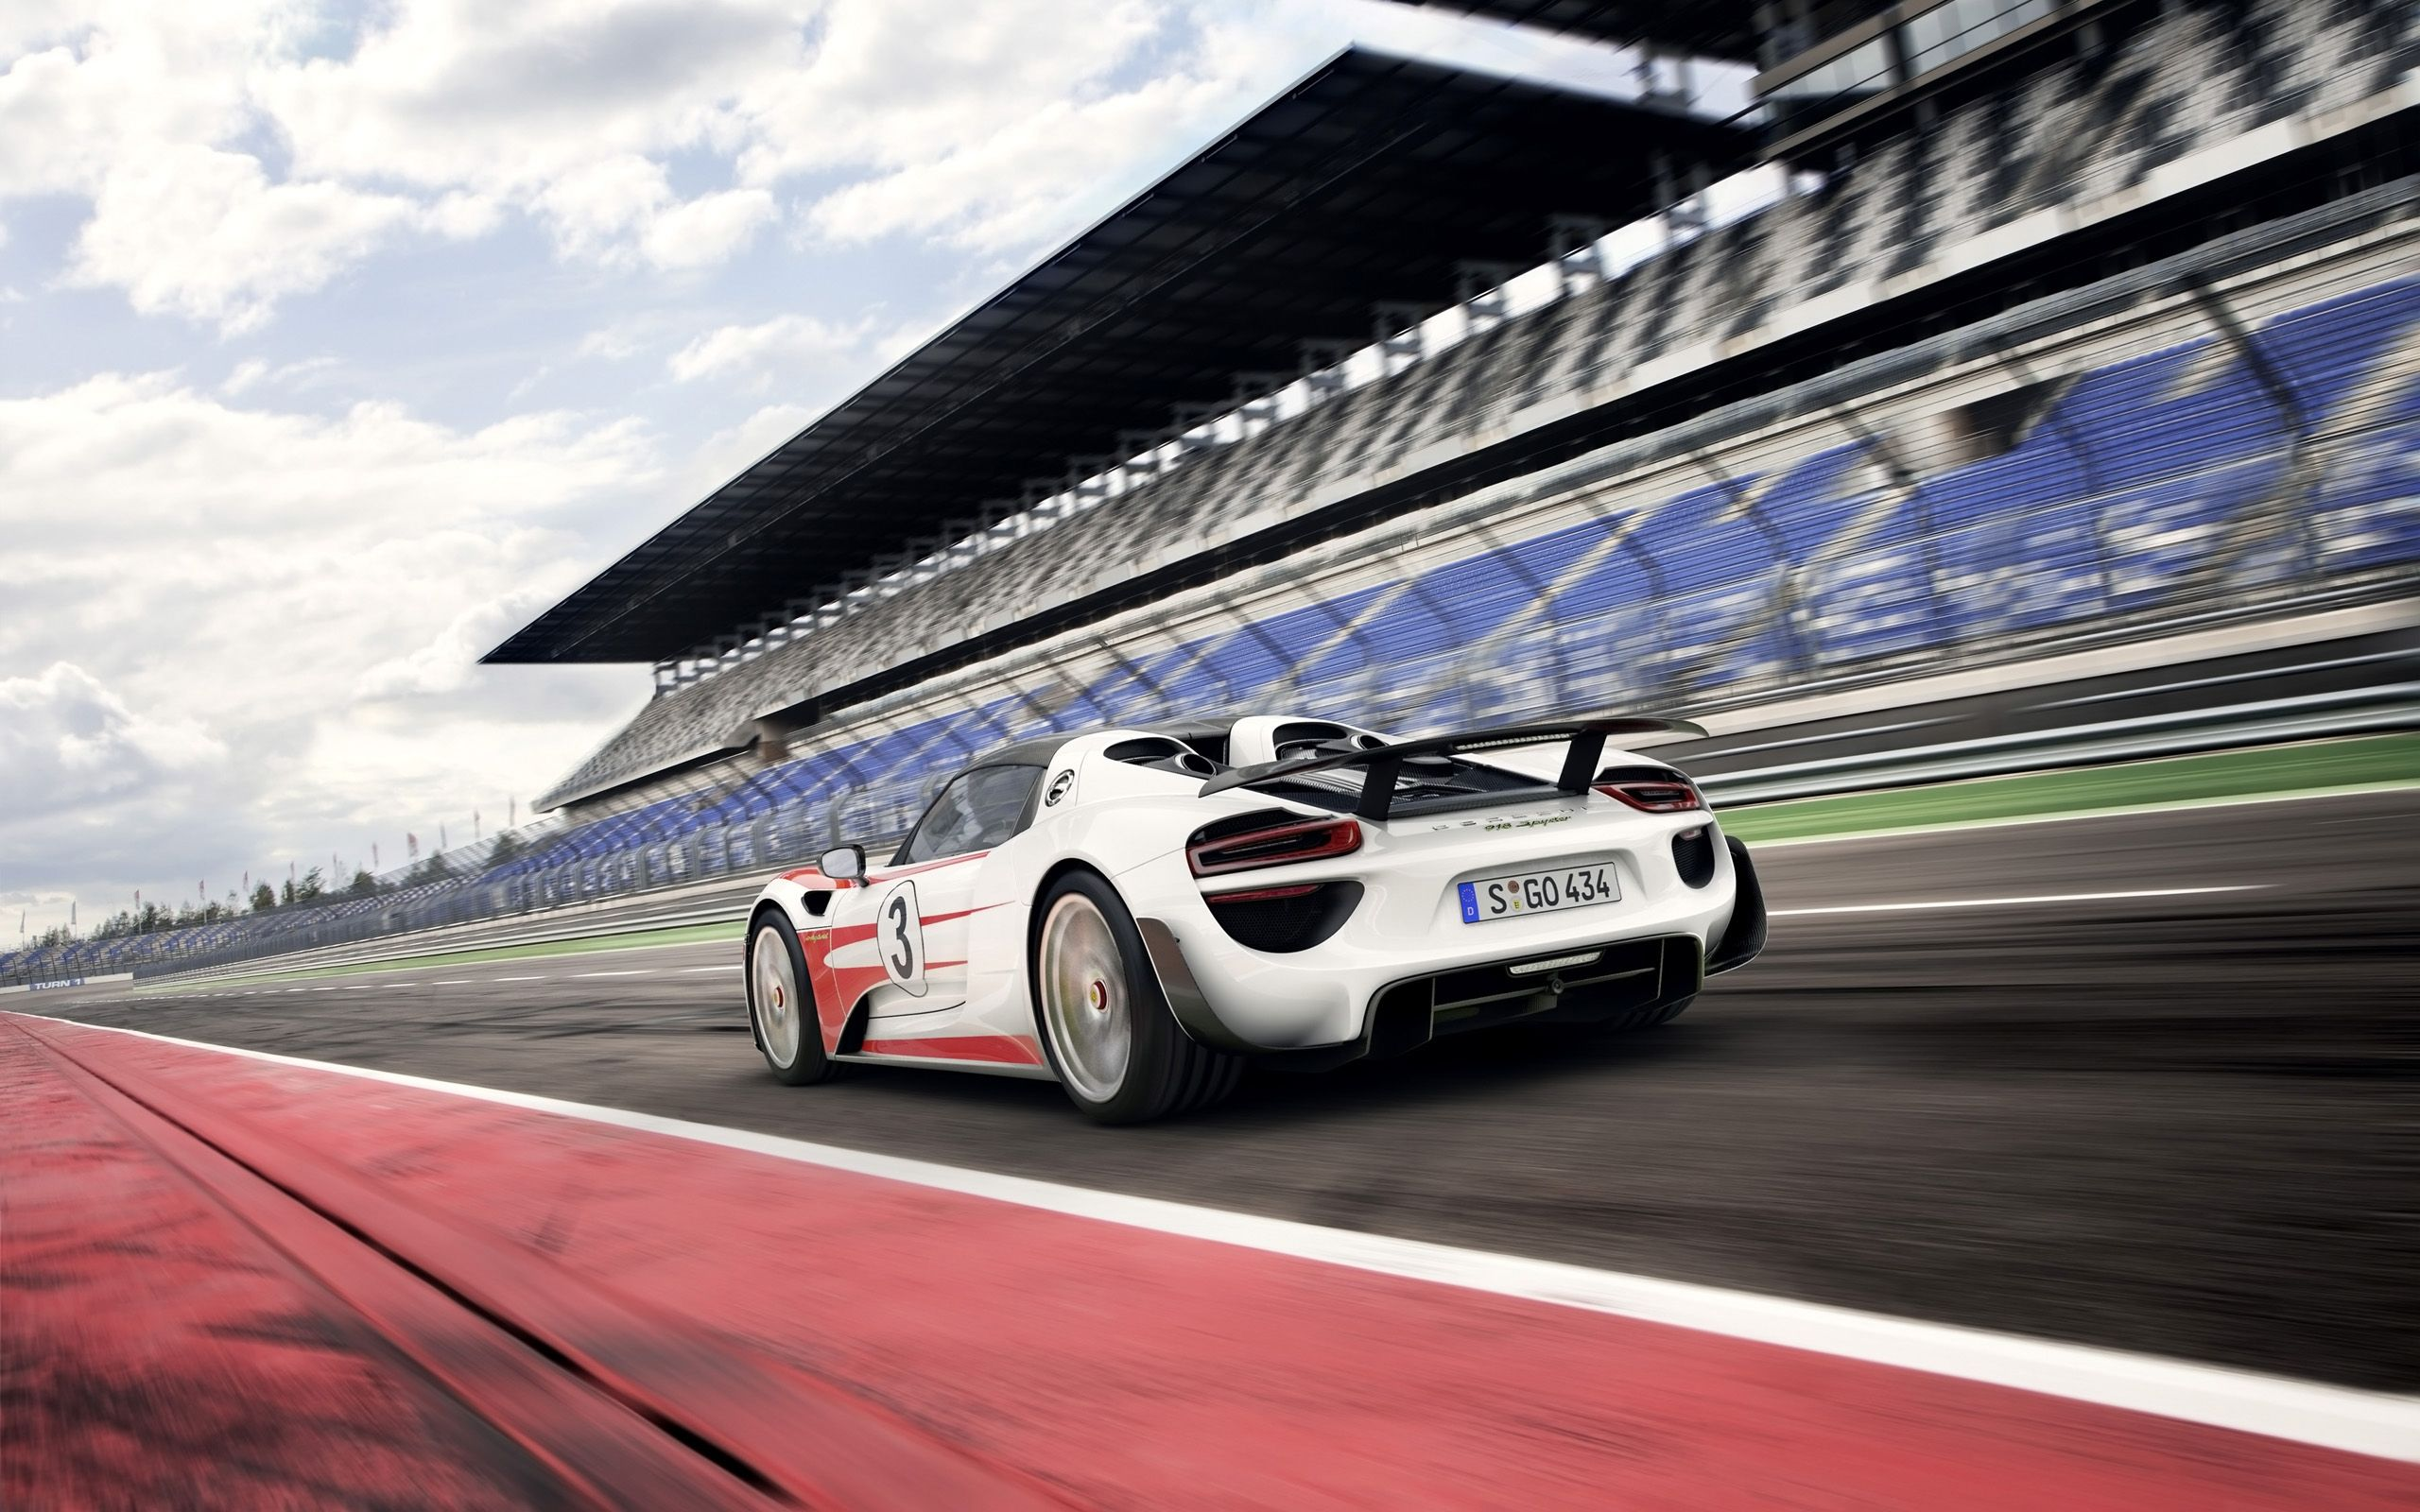 2014 Porsche 918 Spyder Weissach Package Wallpapers